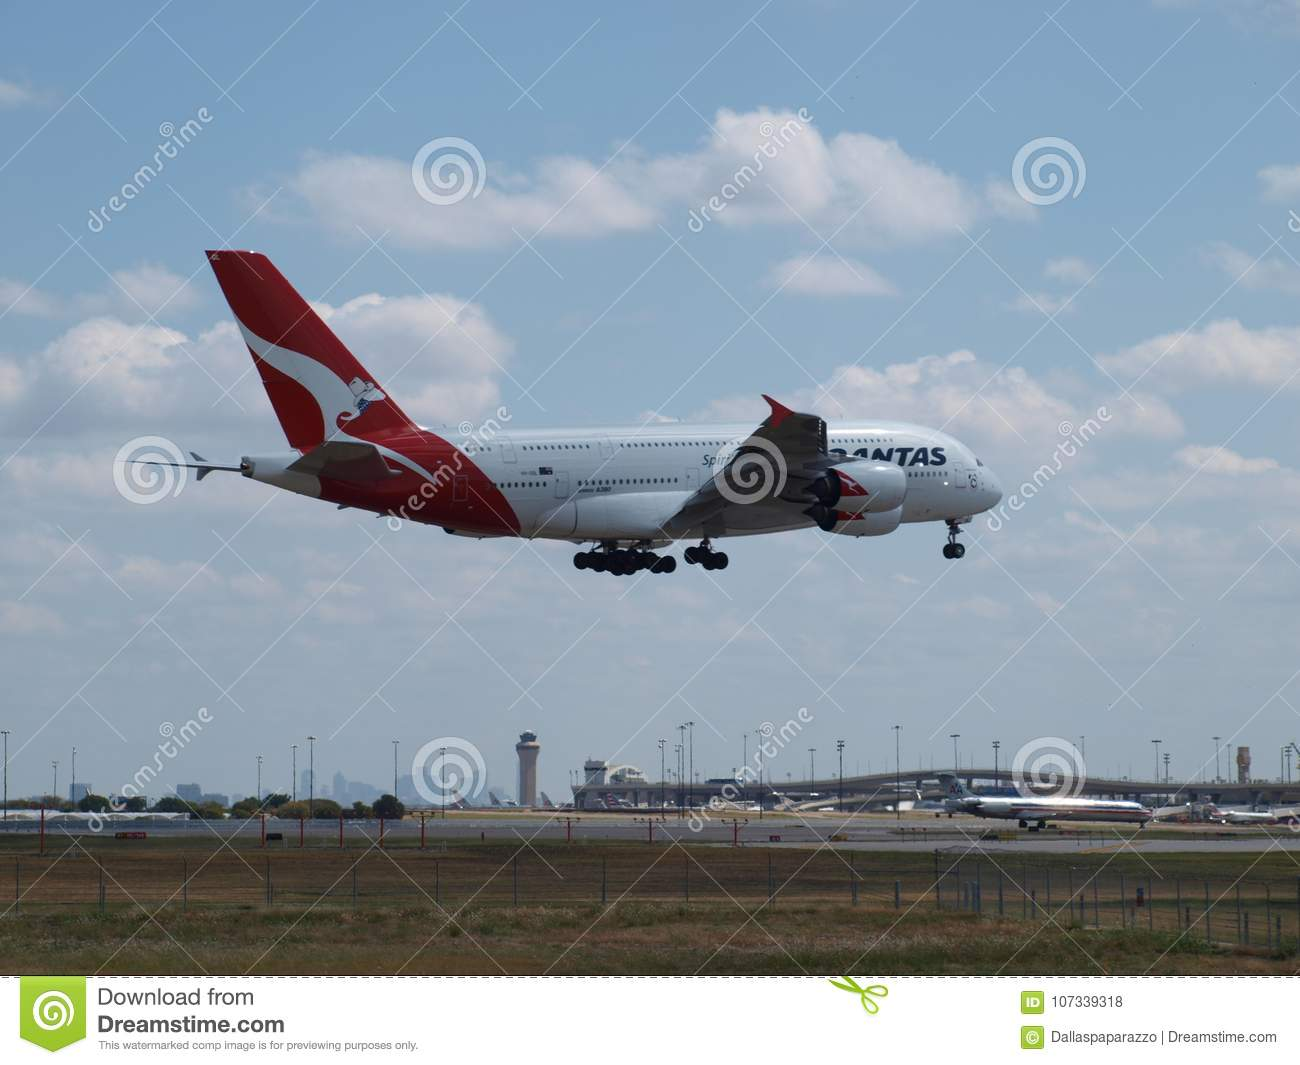 1615f700 Qantas is still getting lots of praise for painting a cowboy hot on its  livery Kangaroo at its inaugural service flight a couple of years ago.